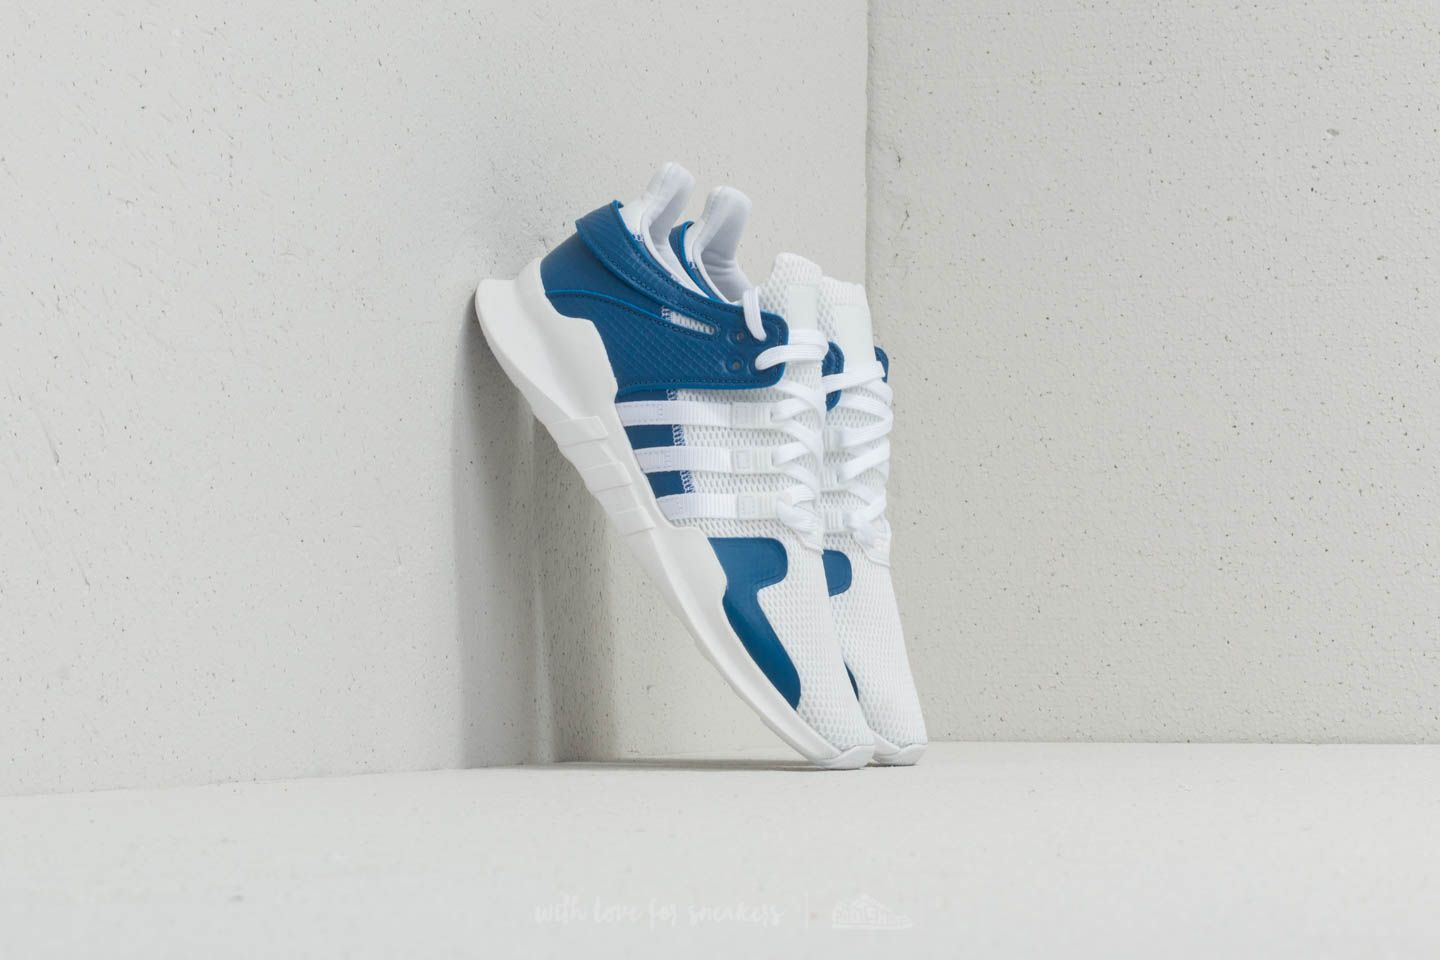 ... adidaws EQT Supprort ADV J Ftw White Ftw White Trace Royal Footshop  lower price with 44693  adidas Originals WMNS Falcon - Crystal ... 09aac512958a7